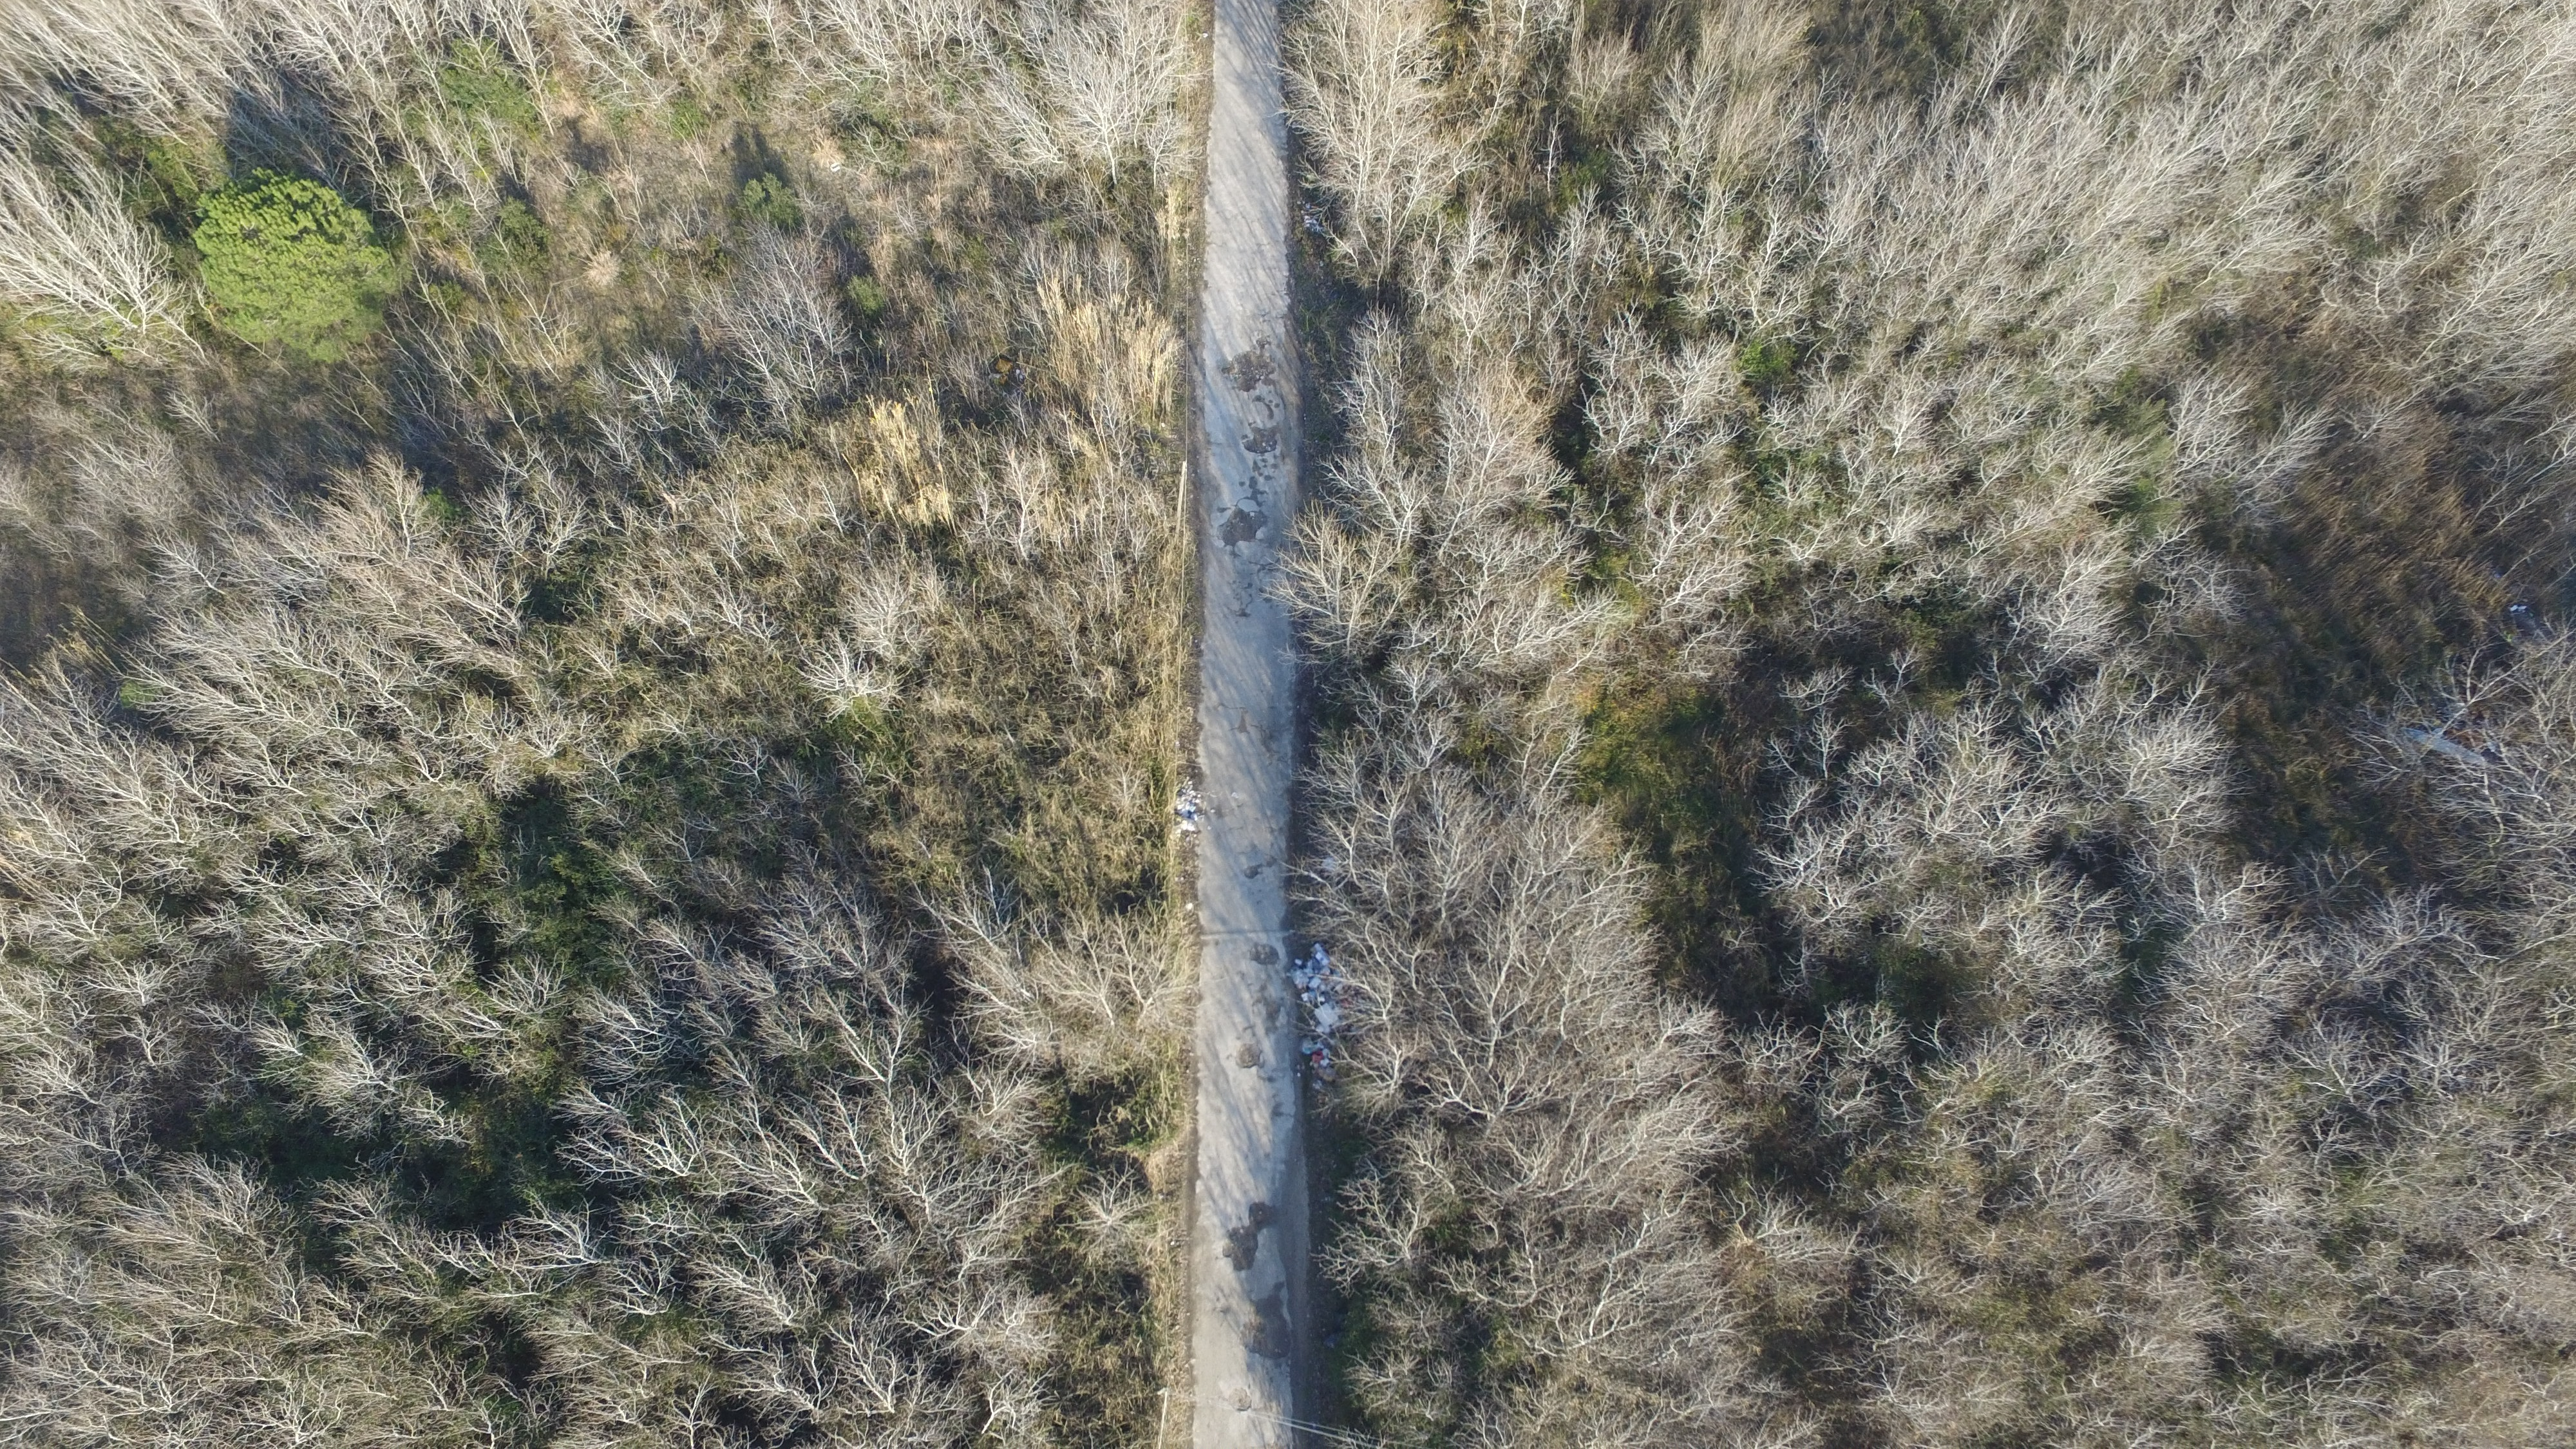 A drone shot of a dilapidated road through a forest in Castel Volturno